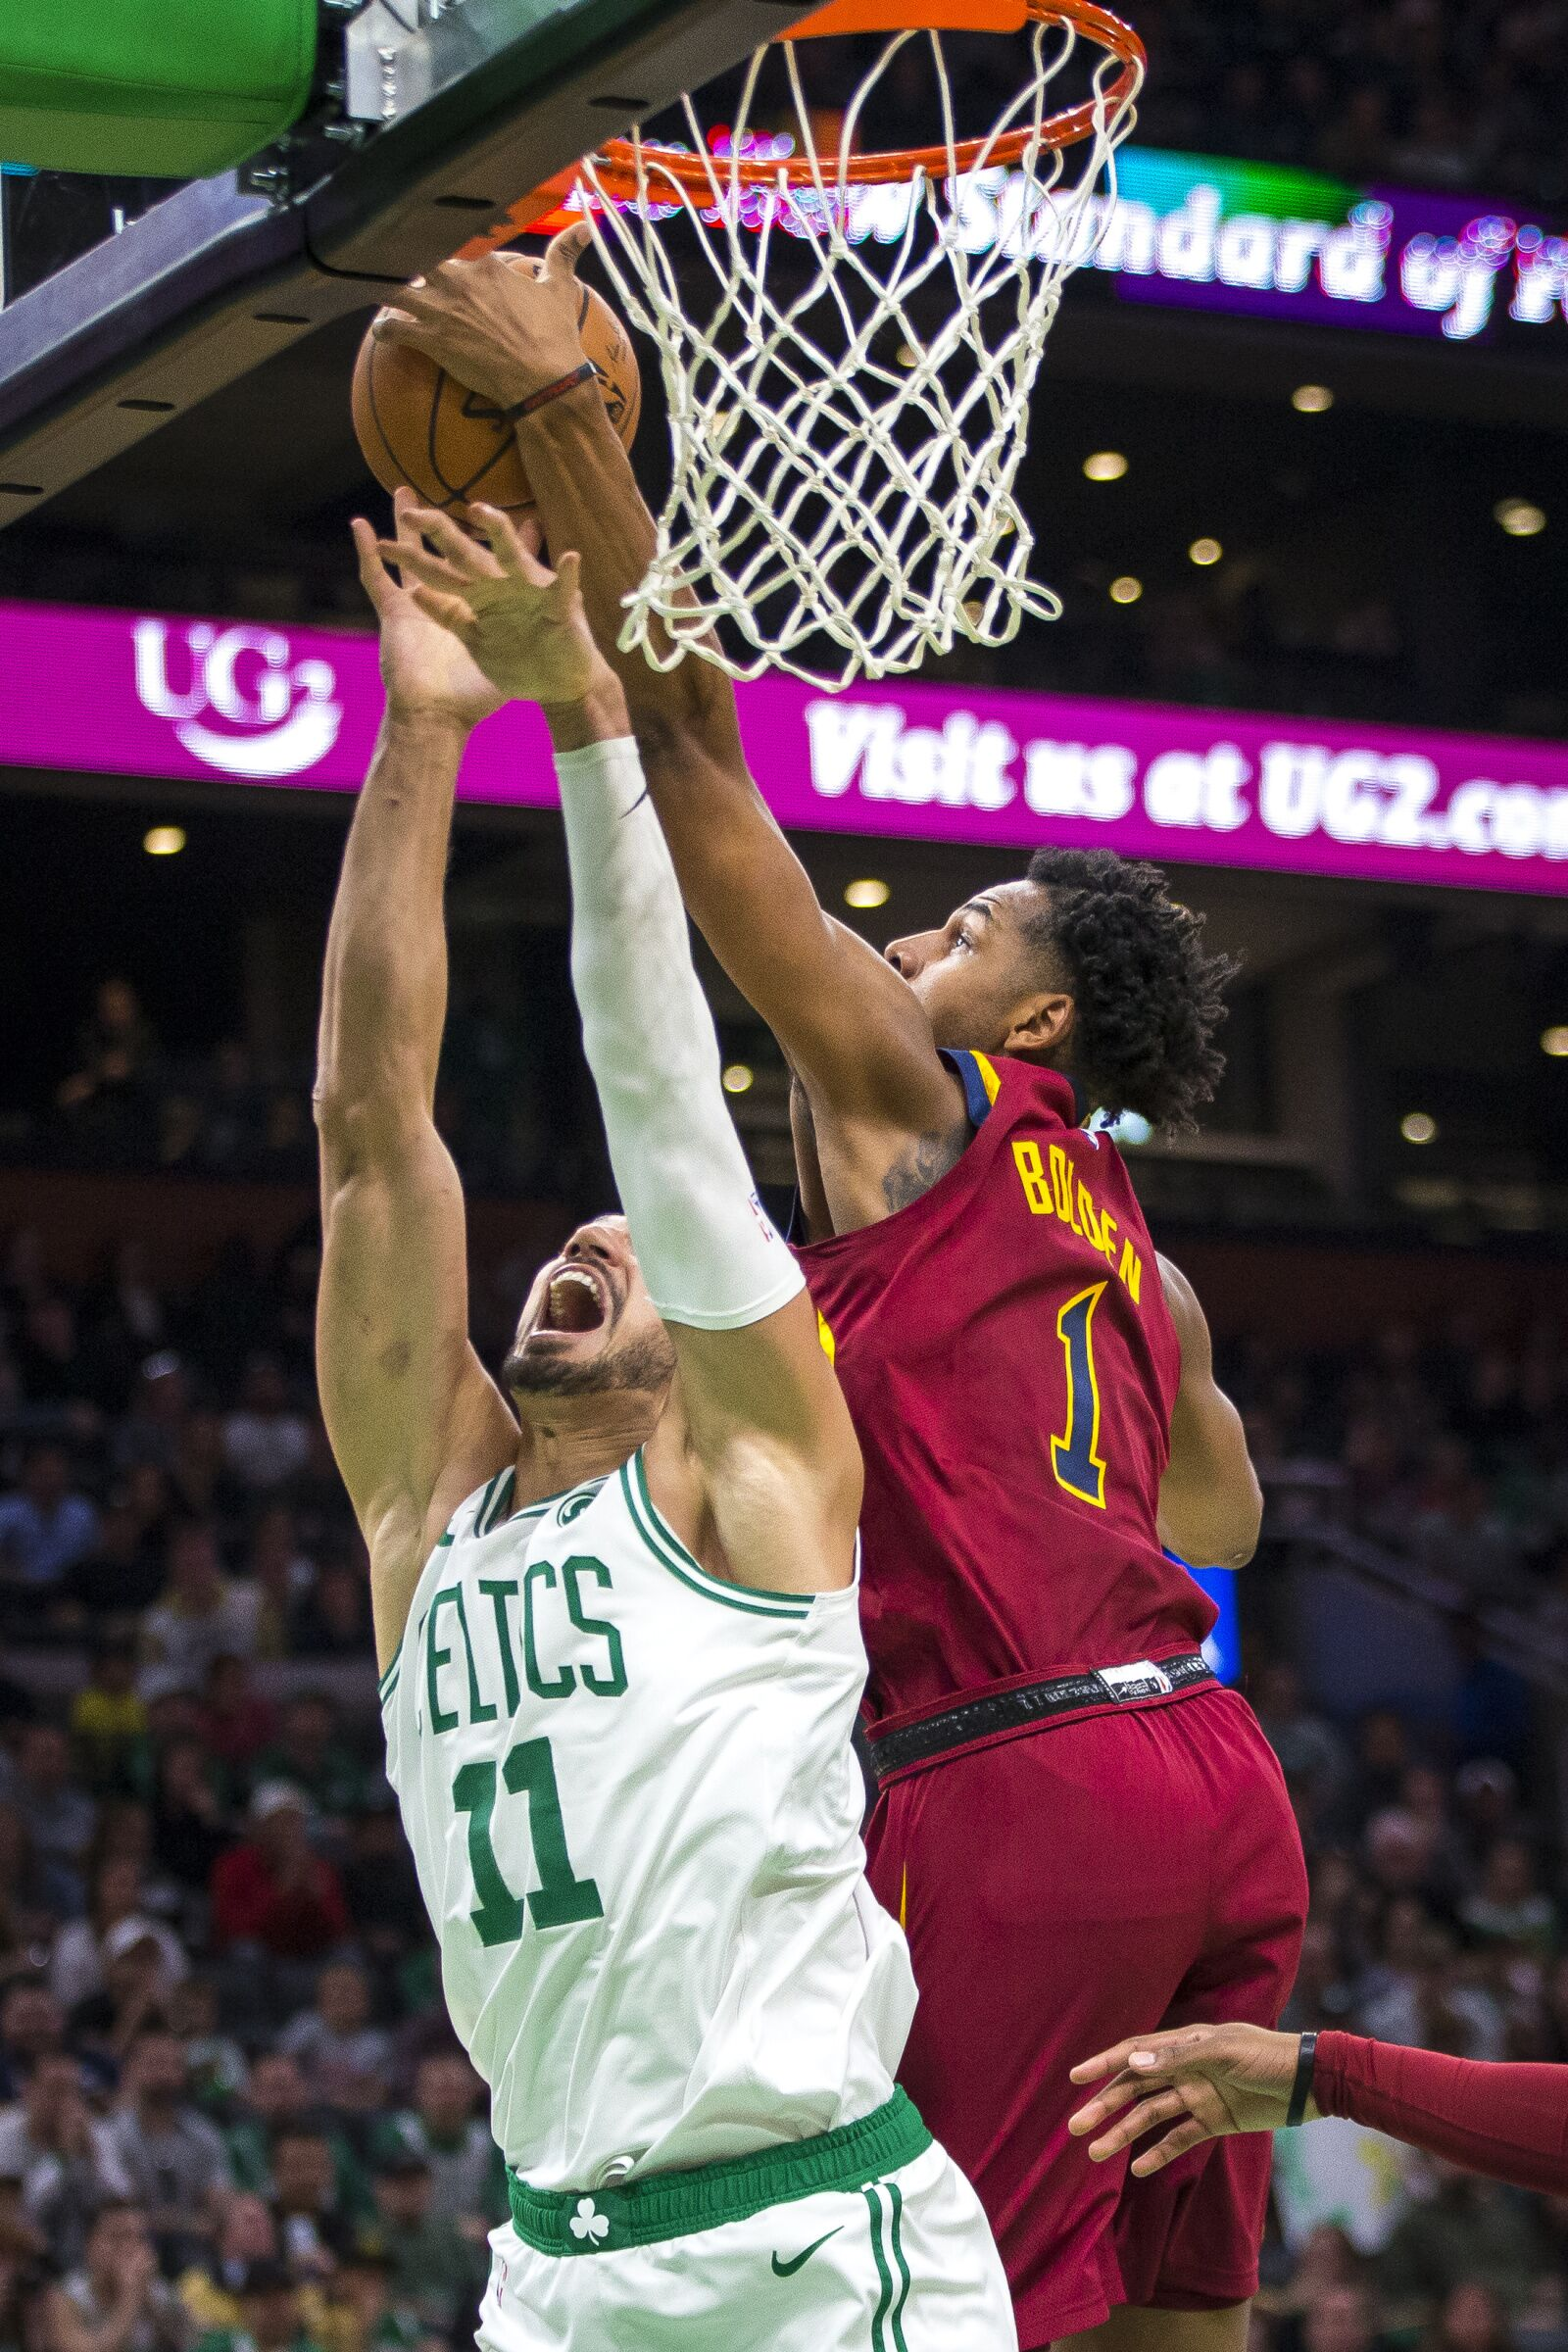 Cavs: Ante Zizic's reported plantar fasciitis injury should lead to a Marques Bolden two-way deal